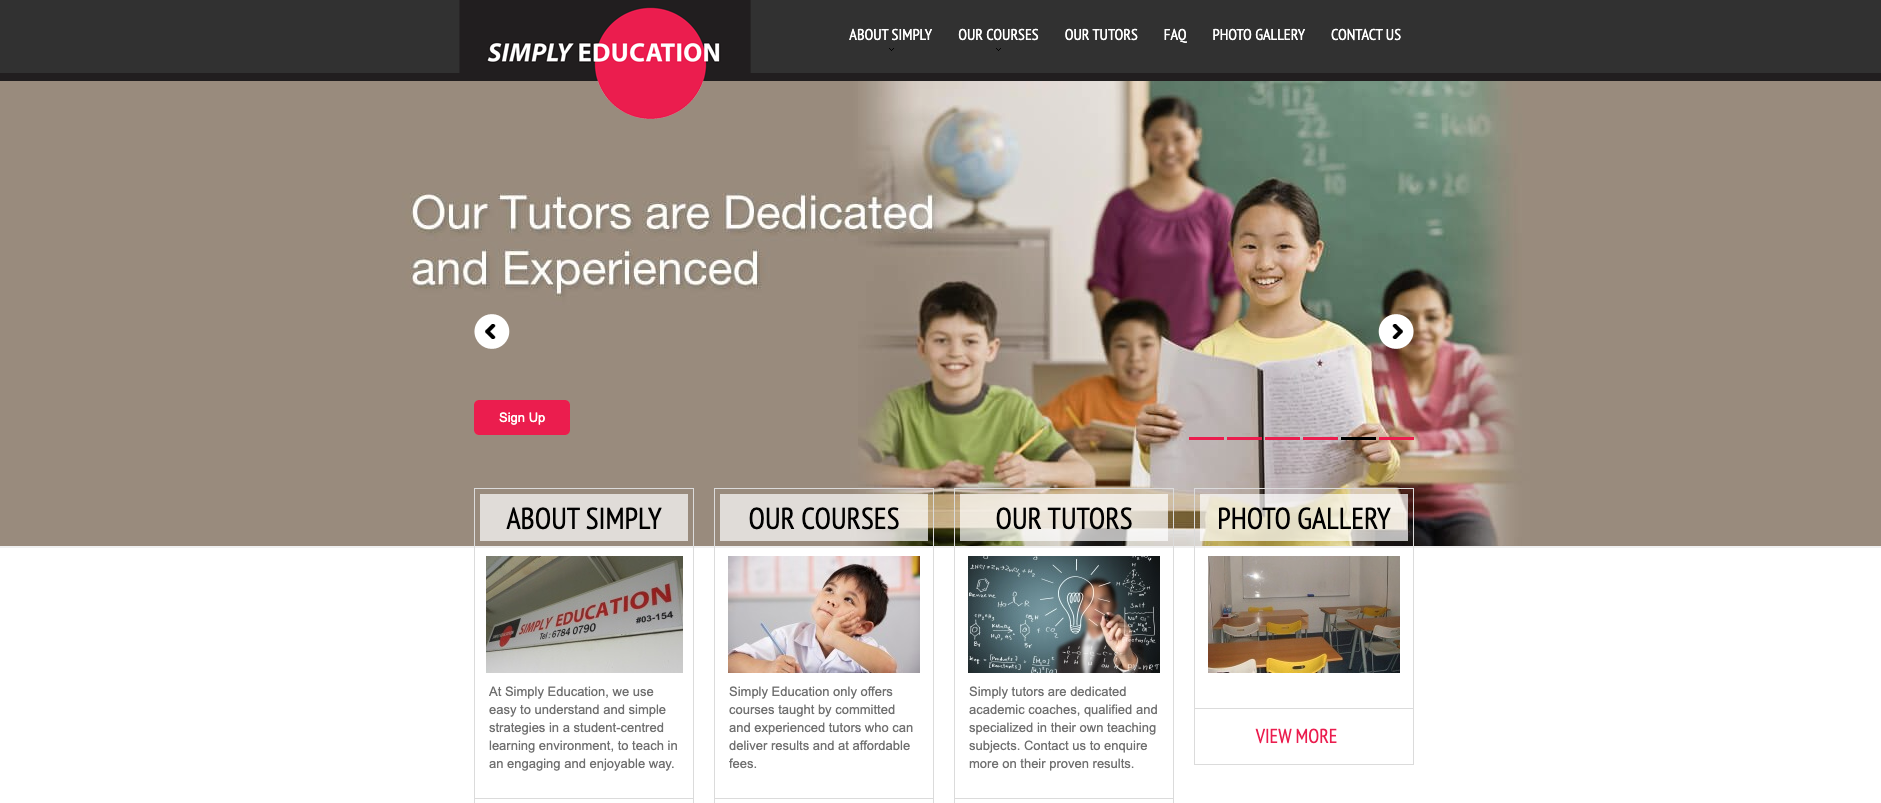 Simply Education Primary School Tuition